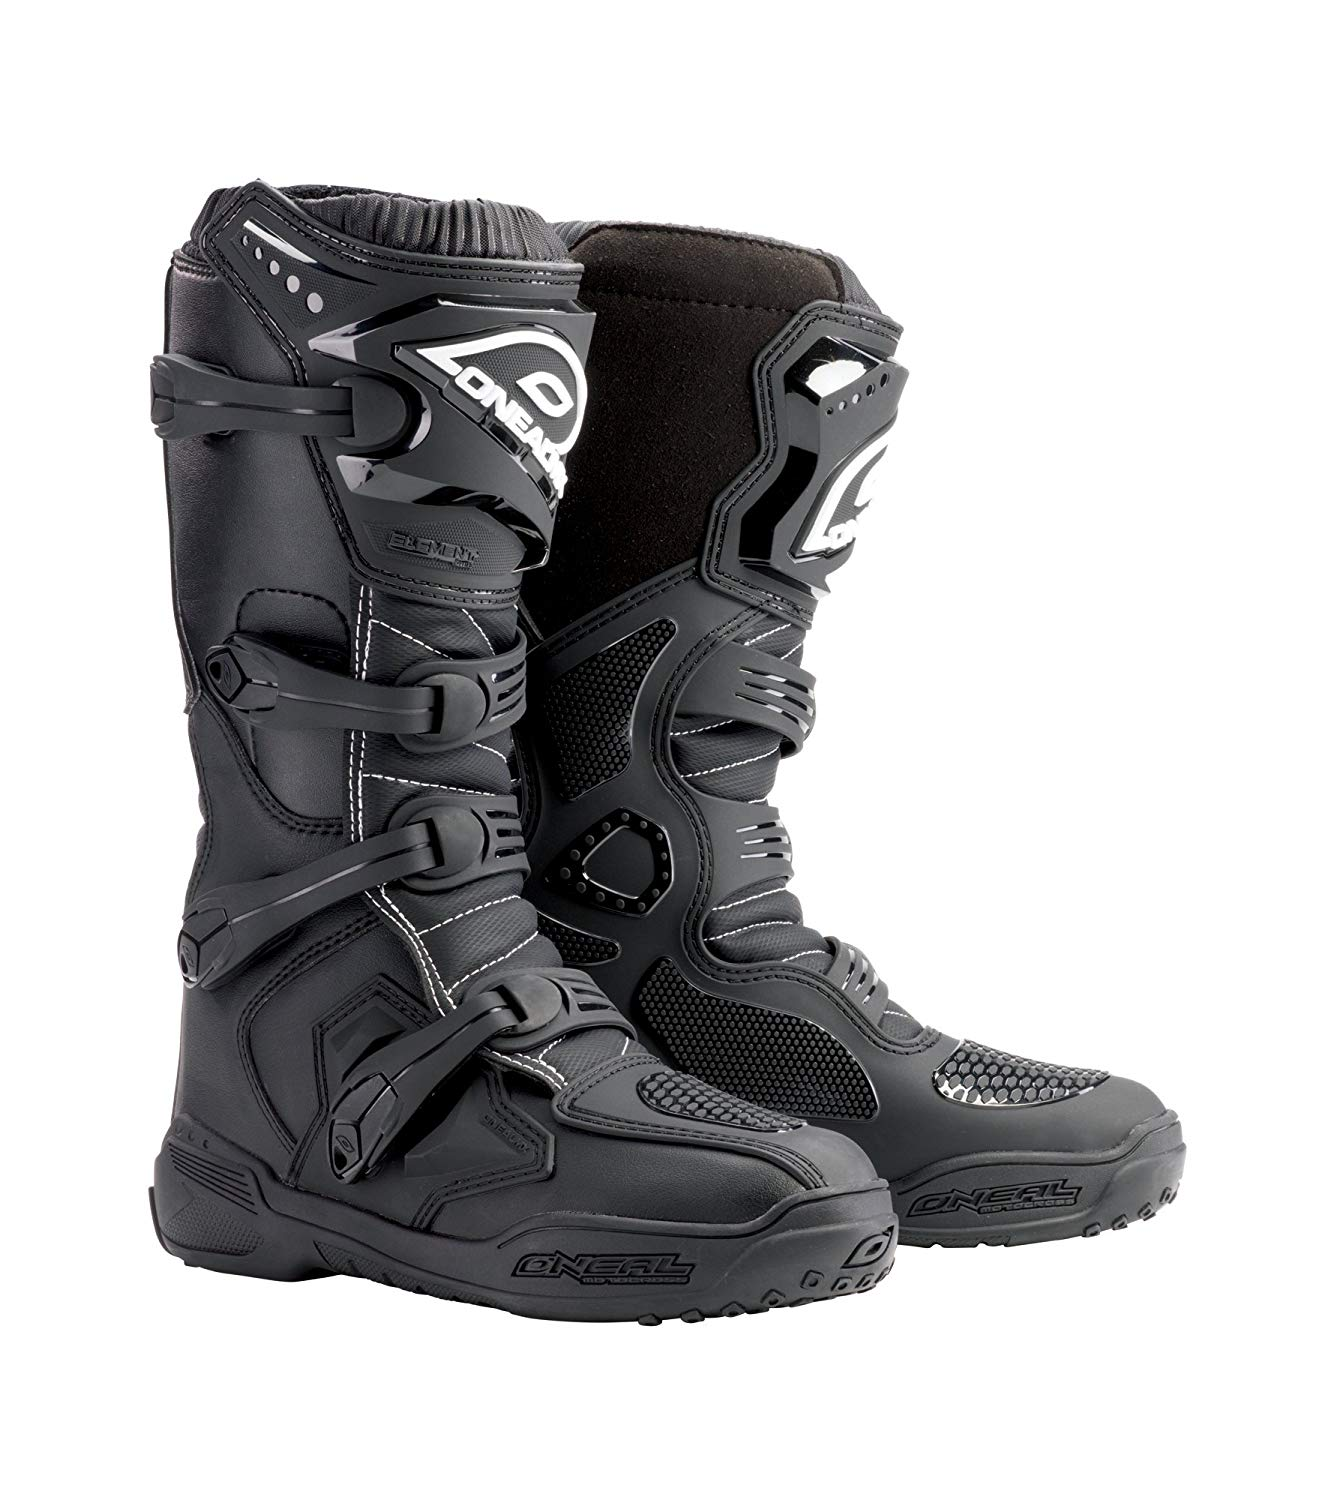 O'Neal Men's Element Boots (Black, Size 14)